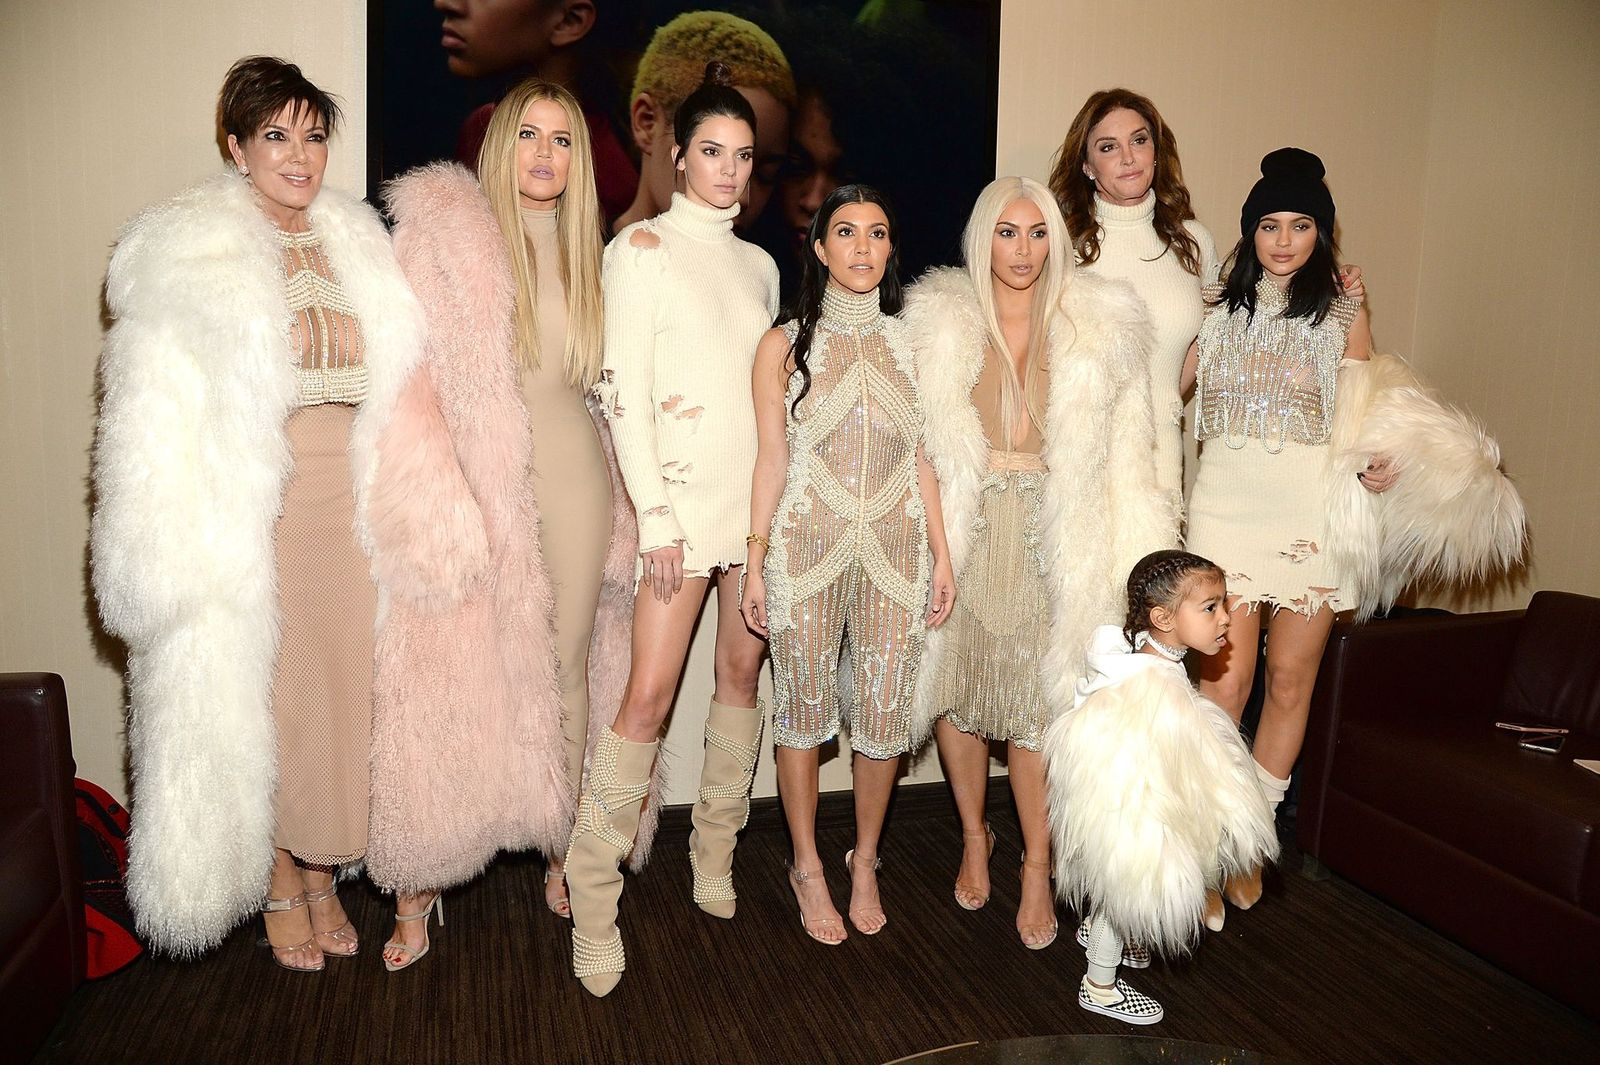 Khloe Kardashian, Kris Jenner, Kendall Jenner, Kourtney Kardashian, Kim Kardashian West, North West, Caitlyn Jenner and Kylie Jenner attend Kanye West Yeezy Season 3 at Madison Square Garden on February 11, 2016 in New York City. | Photo: Getty Images.